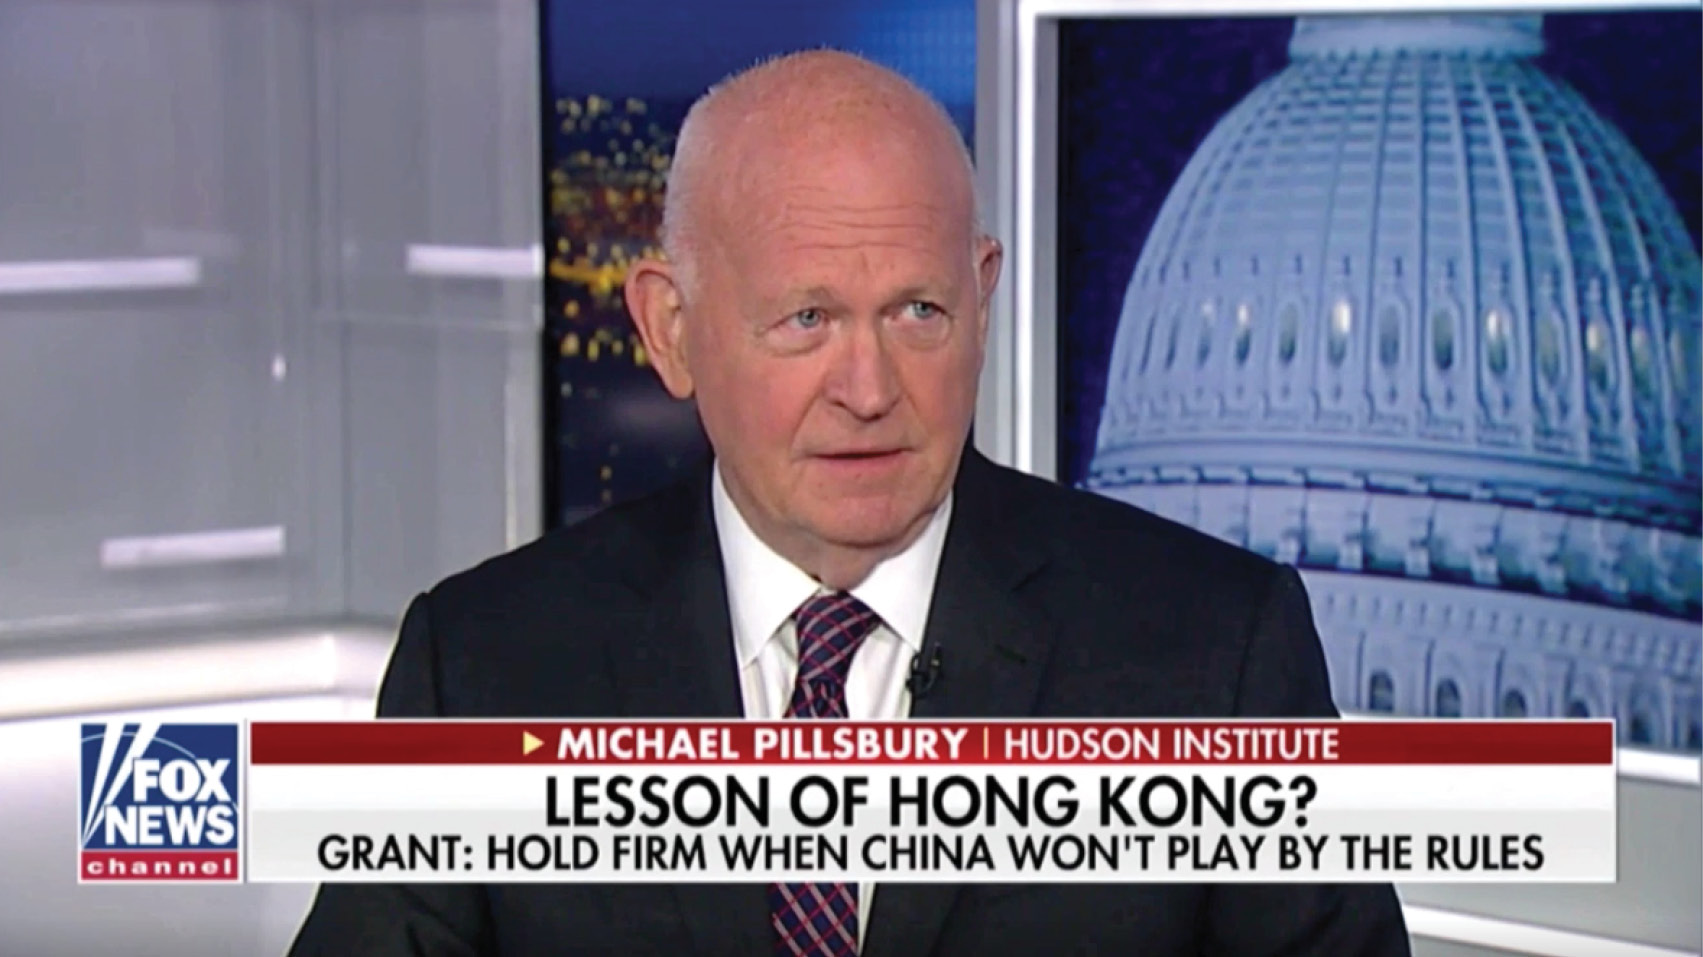 Michael Pillsbury discusses what the Hong Kong protests mean for U.S.-China trade talks.